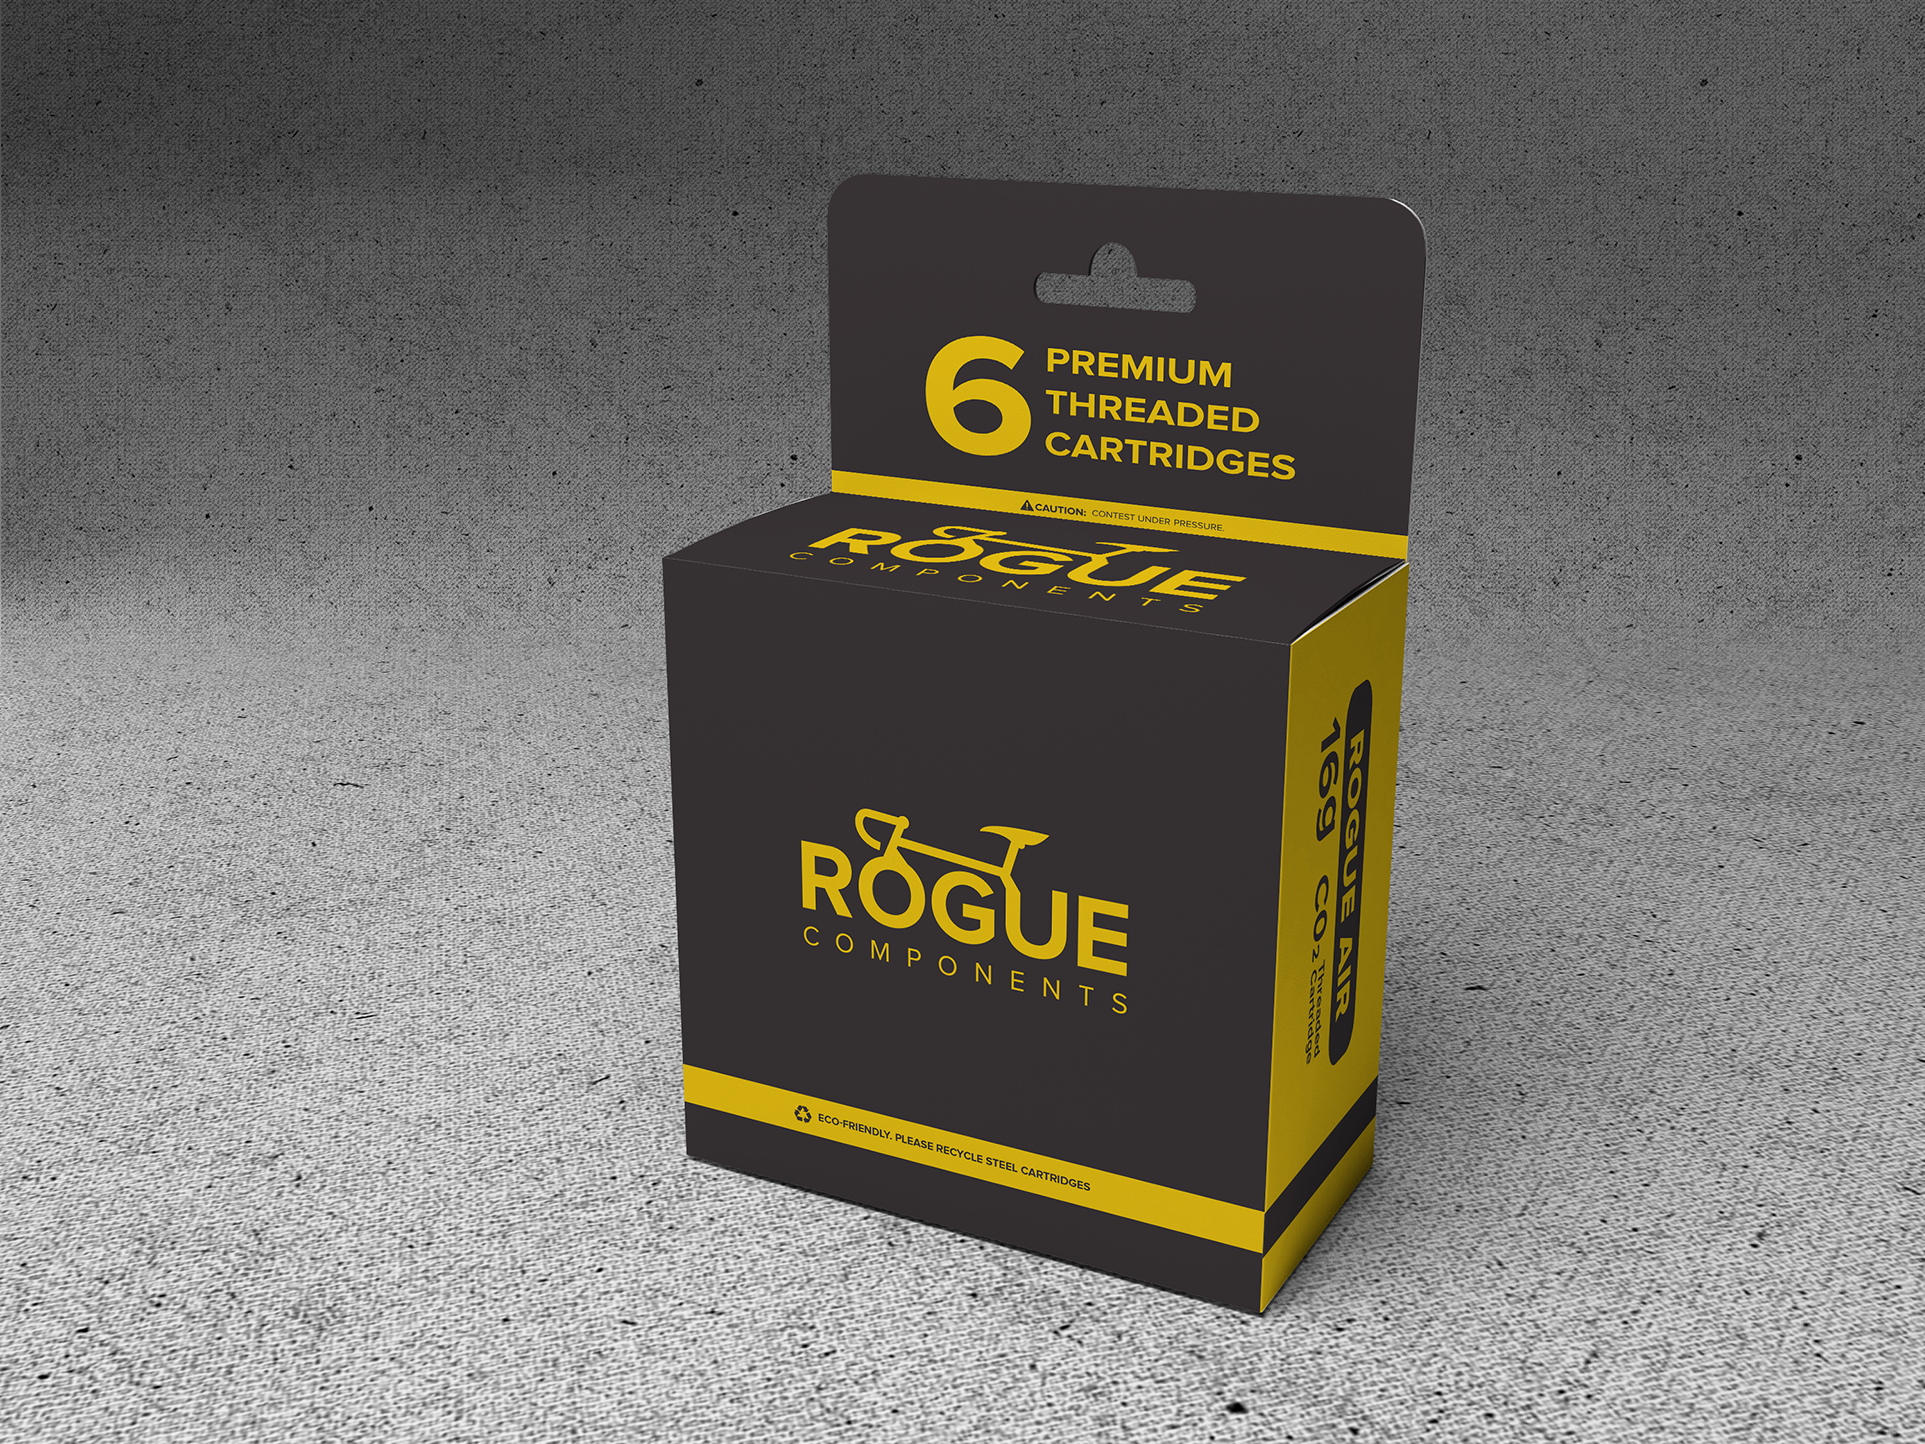 Create a capturing c02 cartridge label and packaging for Rogue Components